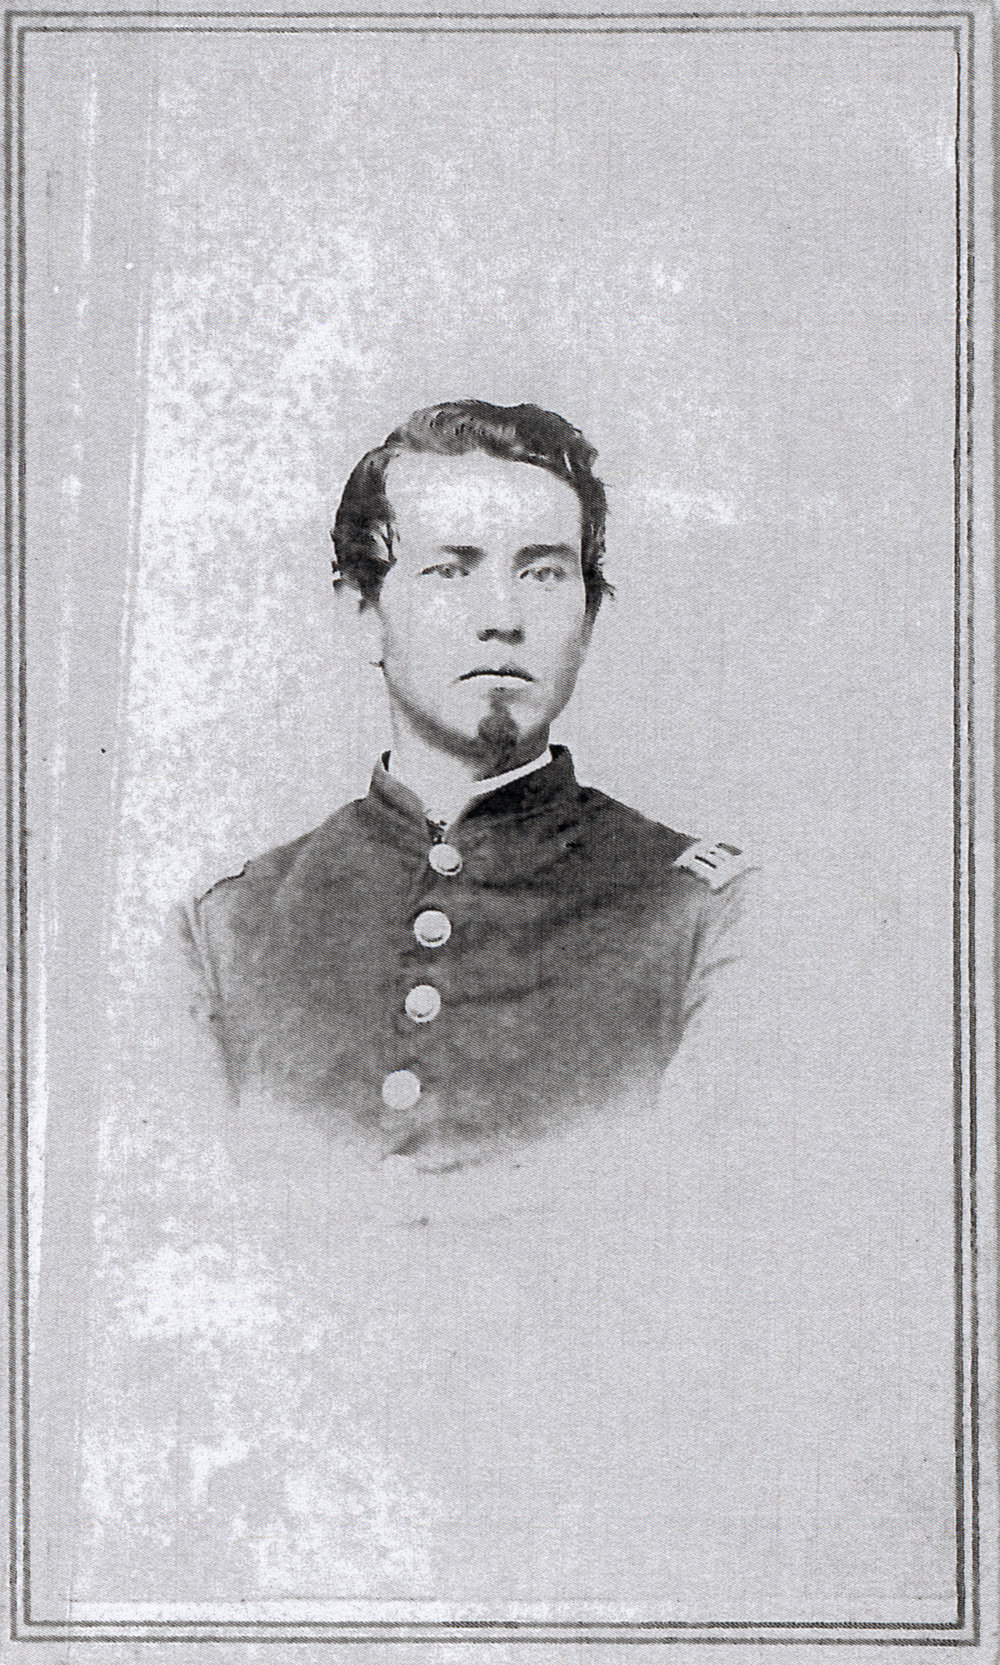 George Winans, captain of Company D